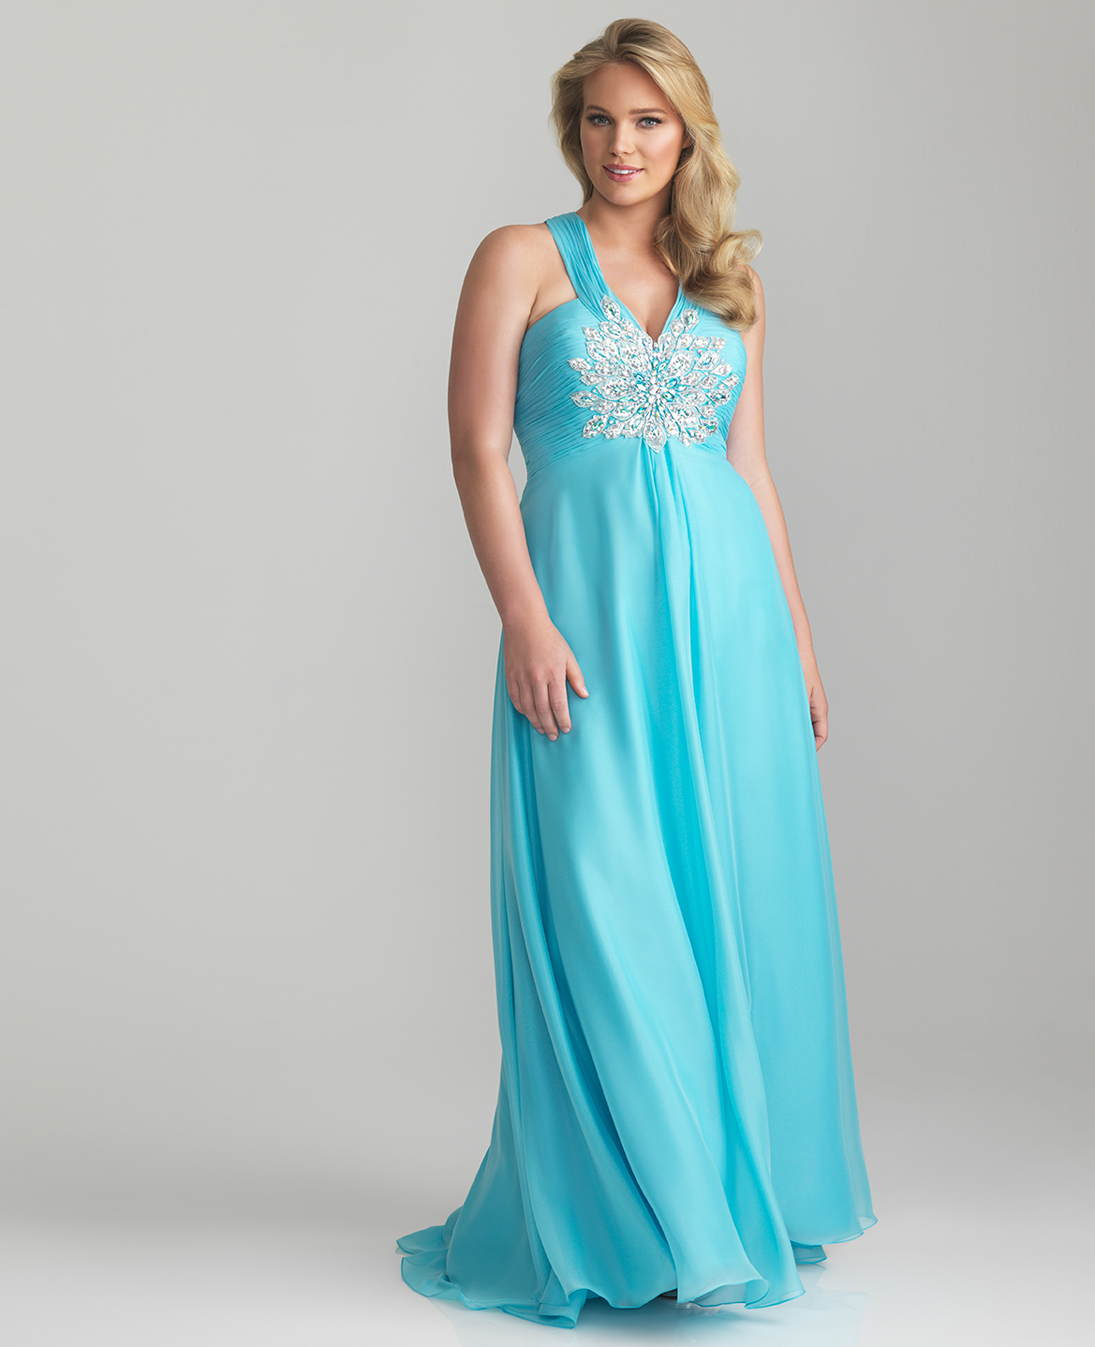 WhiteAzalea Plus Size Dresses: Modest Plus Size Prom Dresses